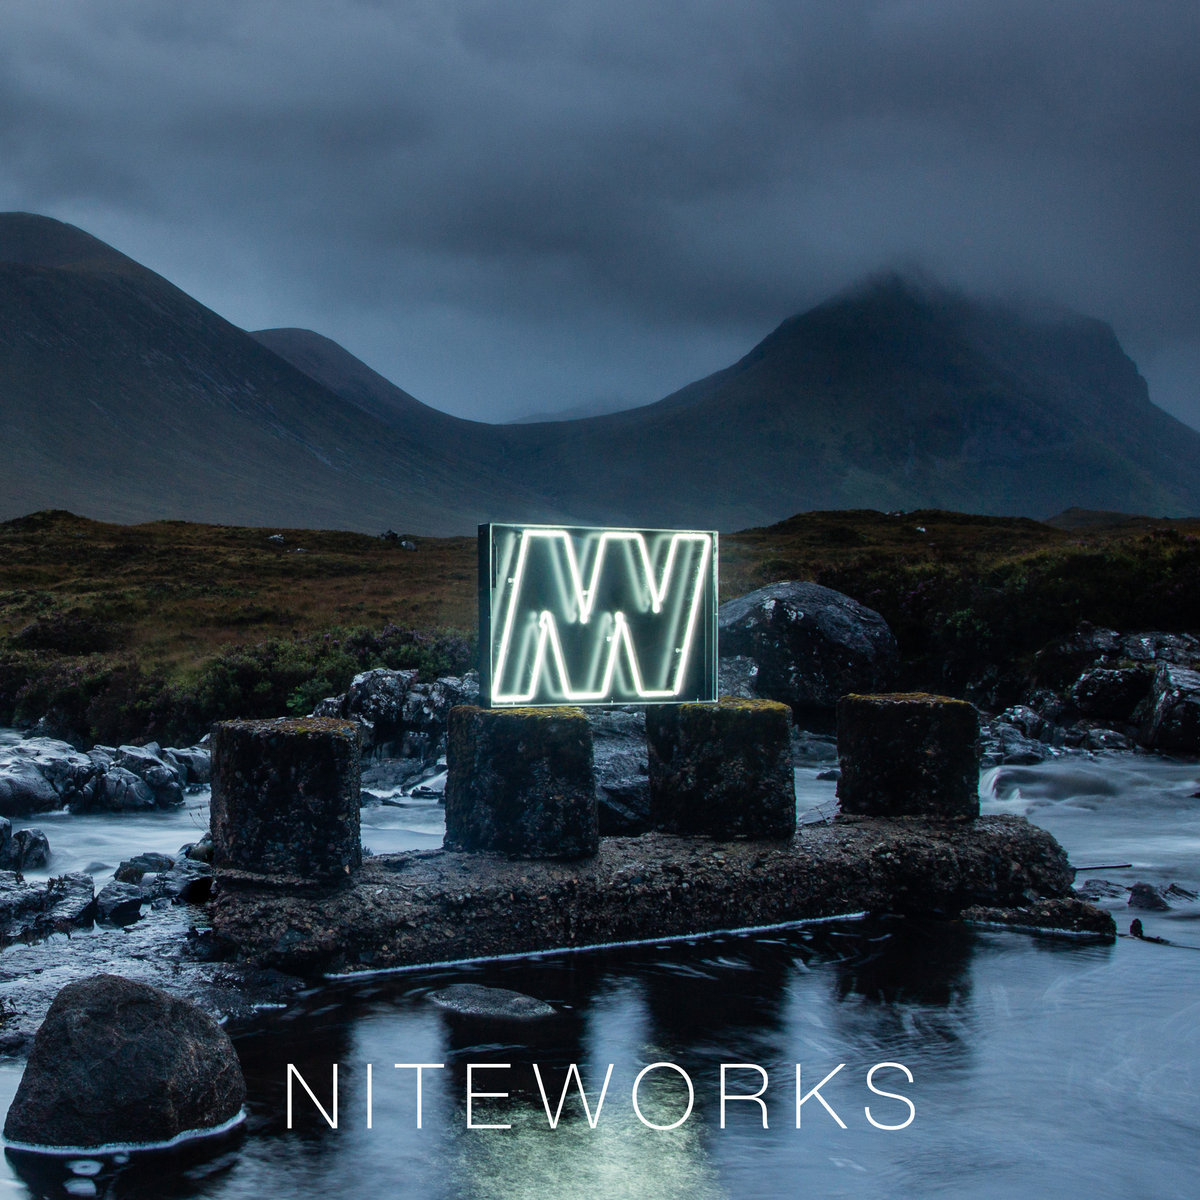 Niteworks, NW (Comann Music)